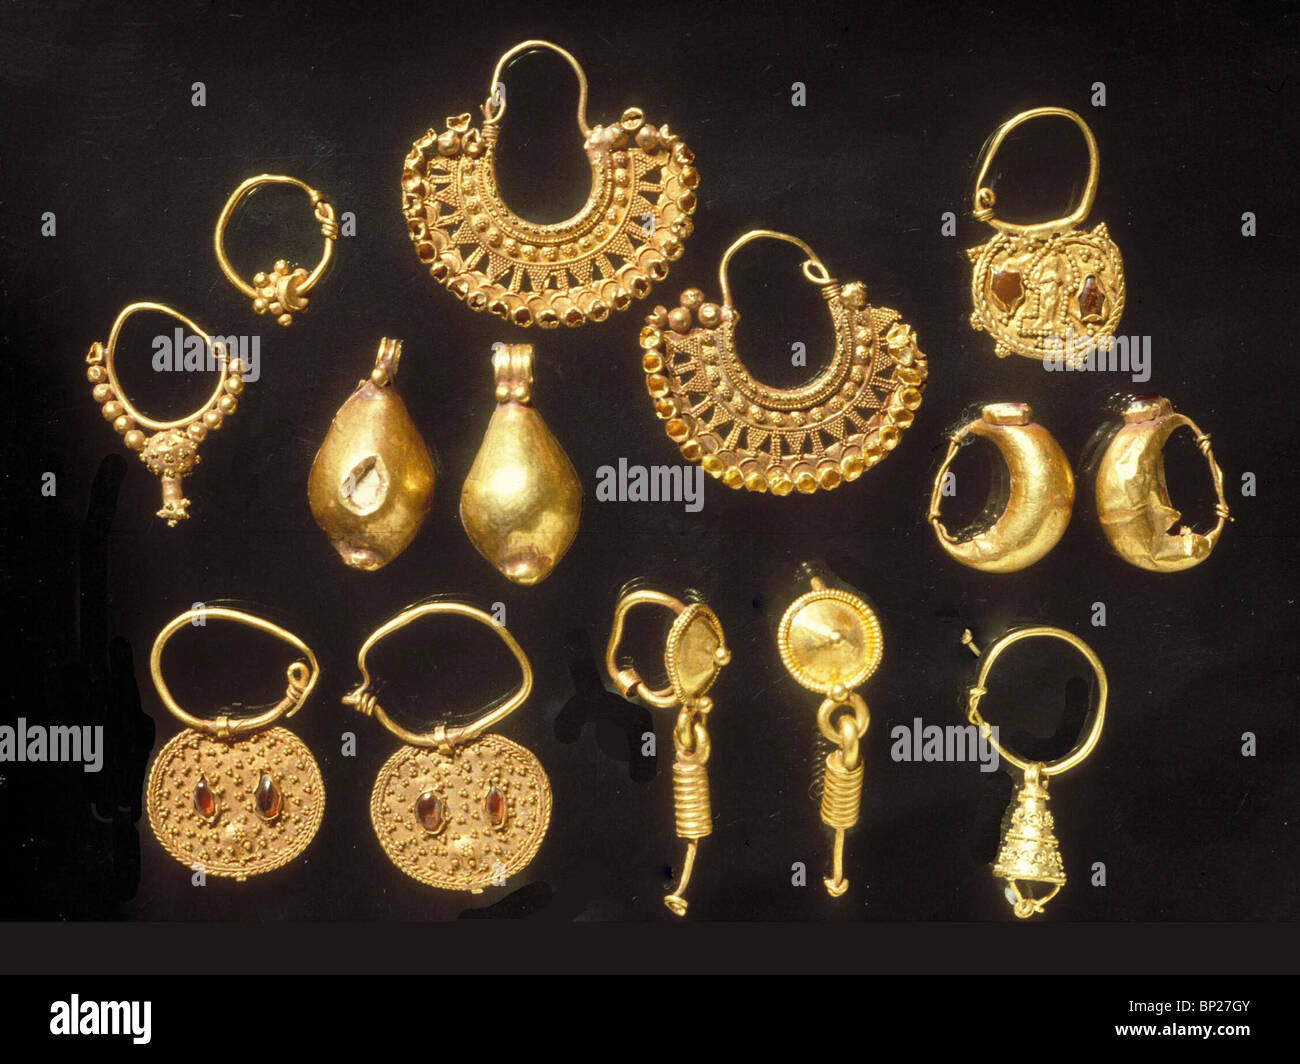 848. MEMPHIS (NORTHERN NEGEV), GROUP OF GOLDEN EARRINGS, BYZANTINE Stock Photo